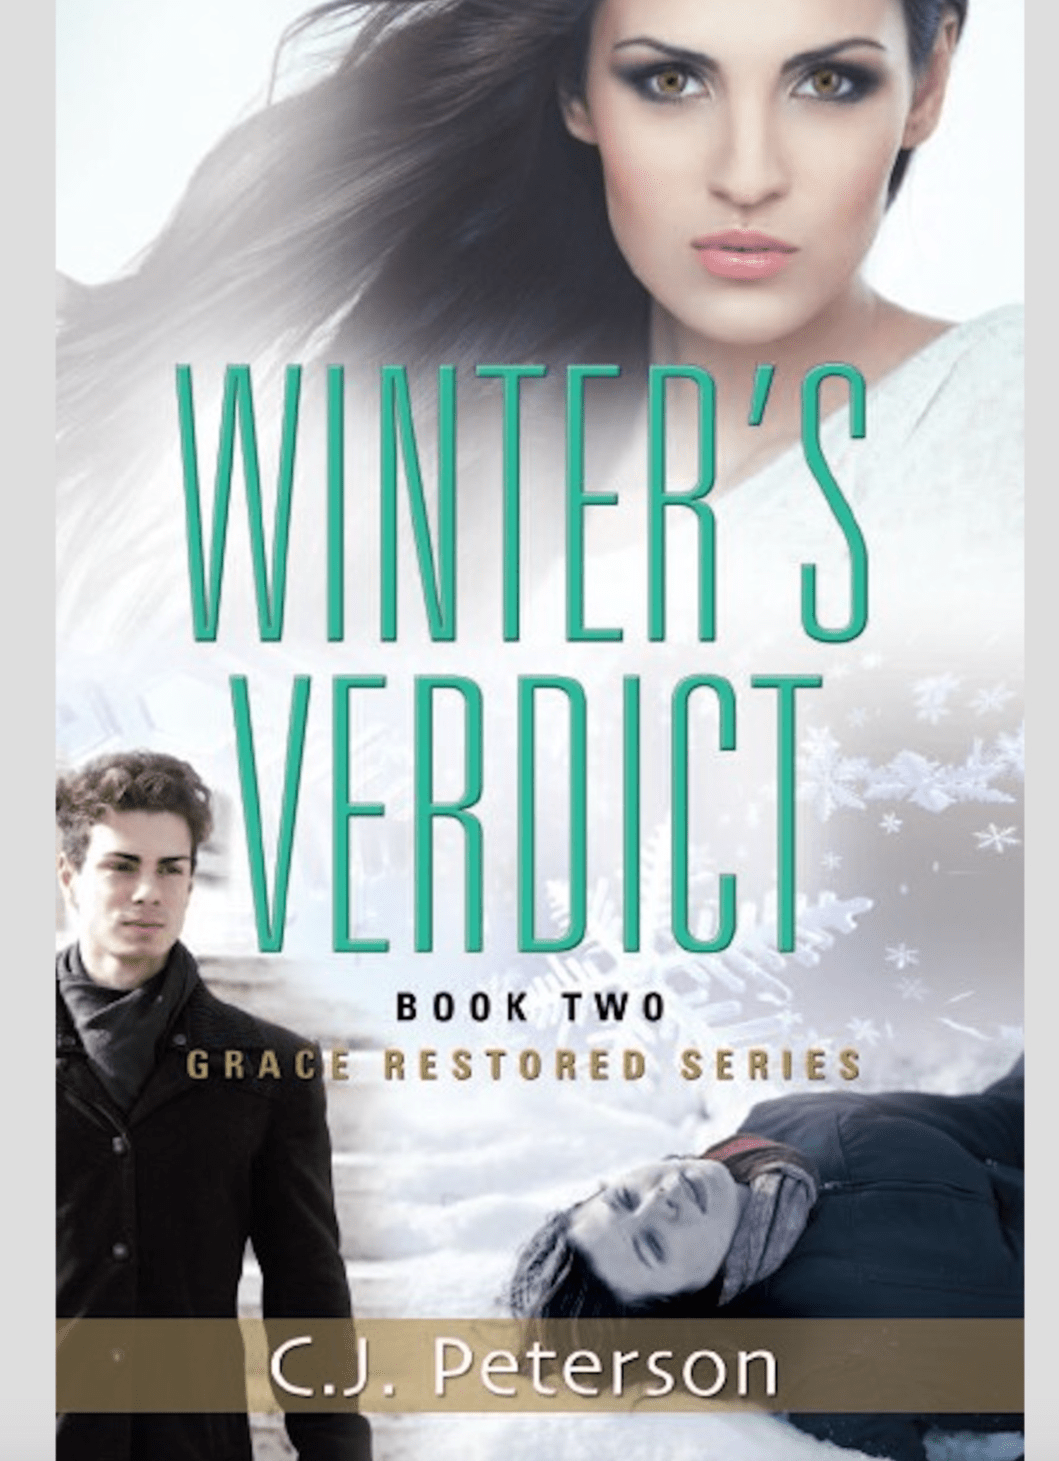 WINTER'S VERDICT (Book 2, Grace Restored Series)